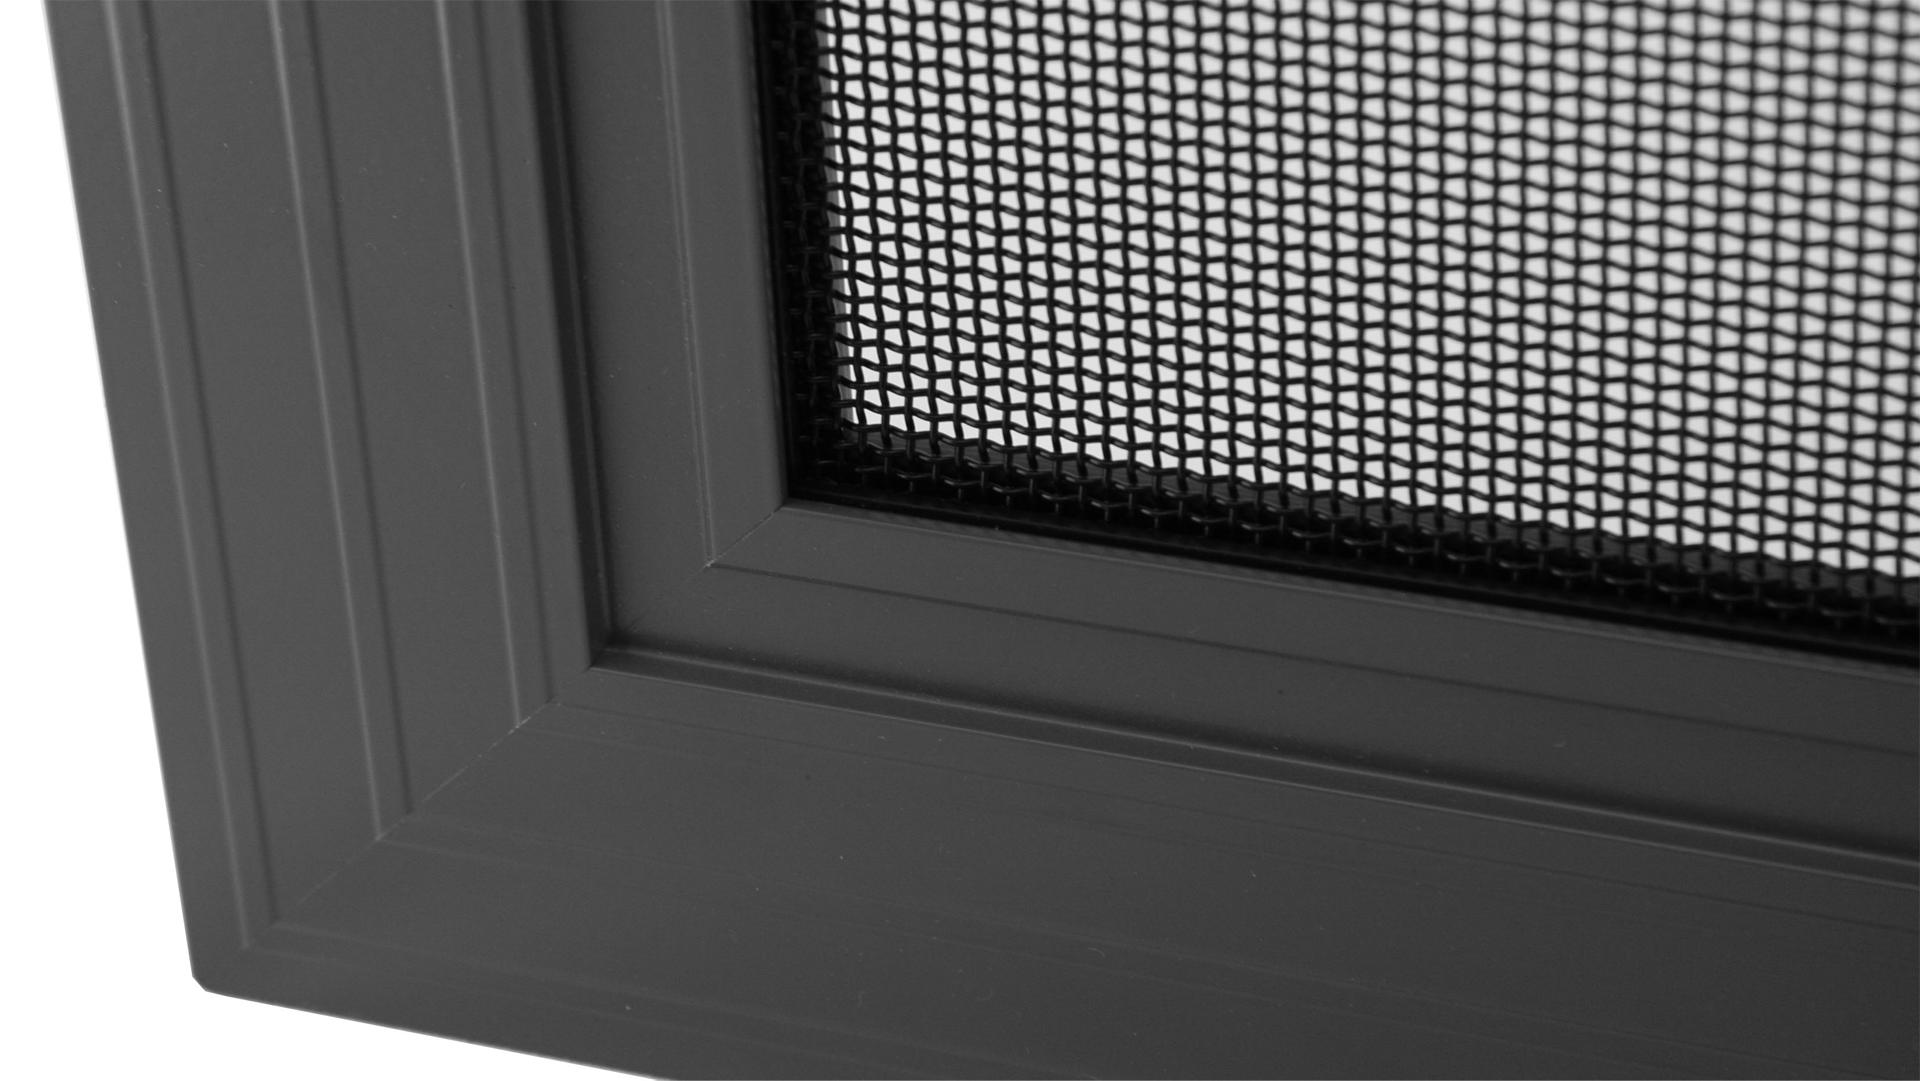 Stainless Steel Screens : Security safety doors and windows stainless steel mesh